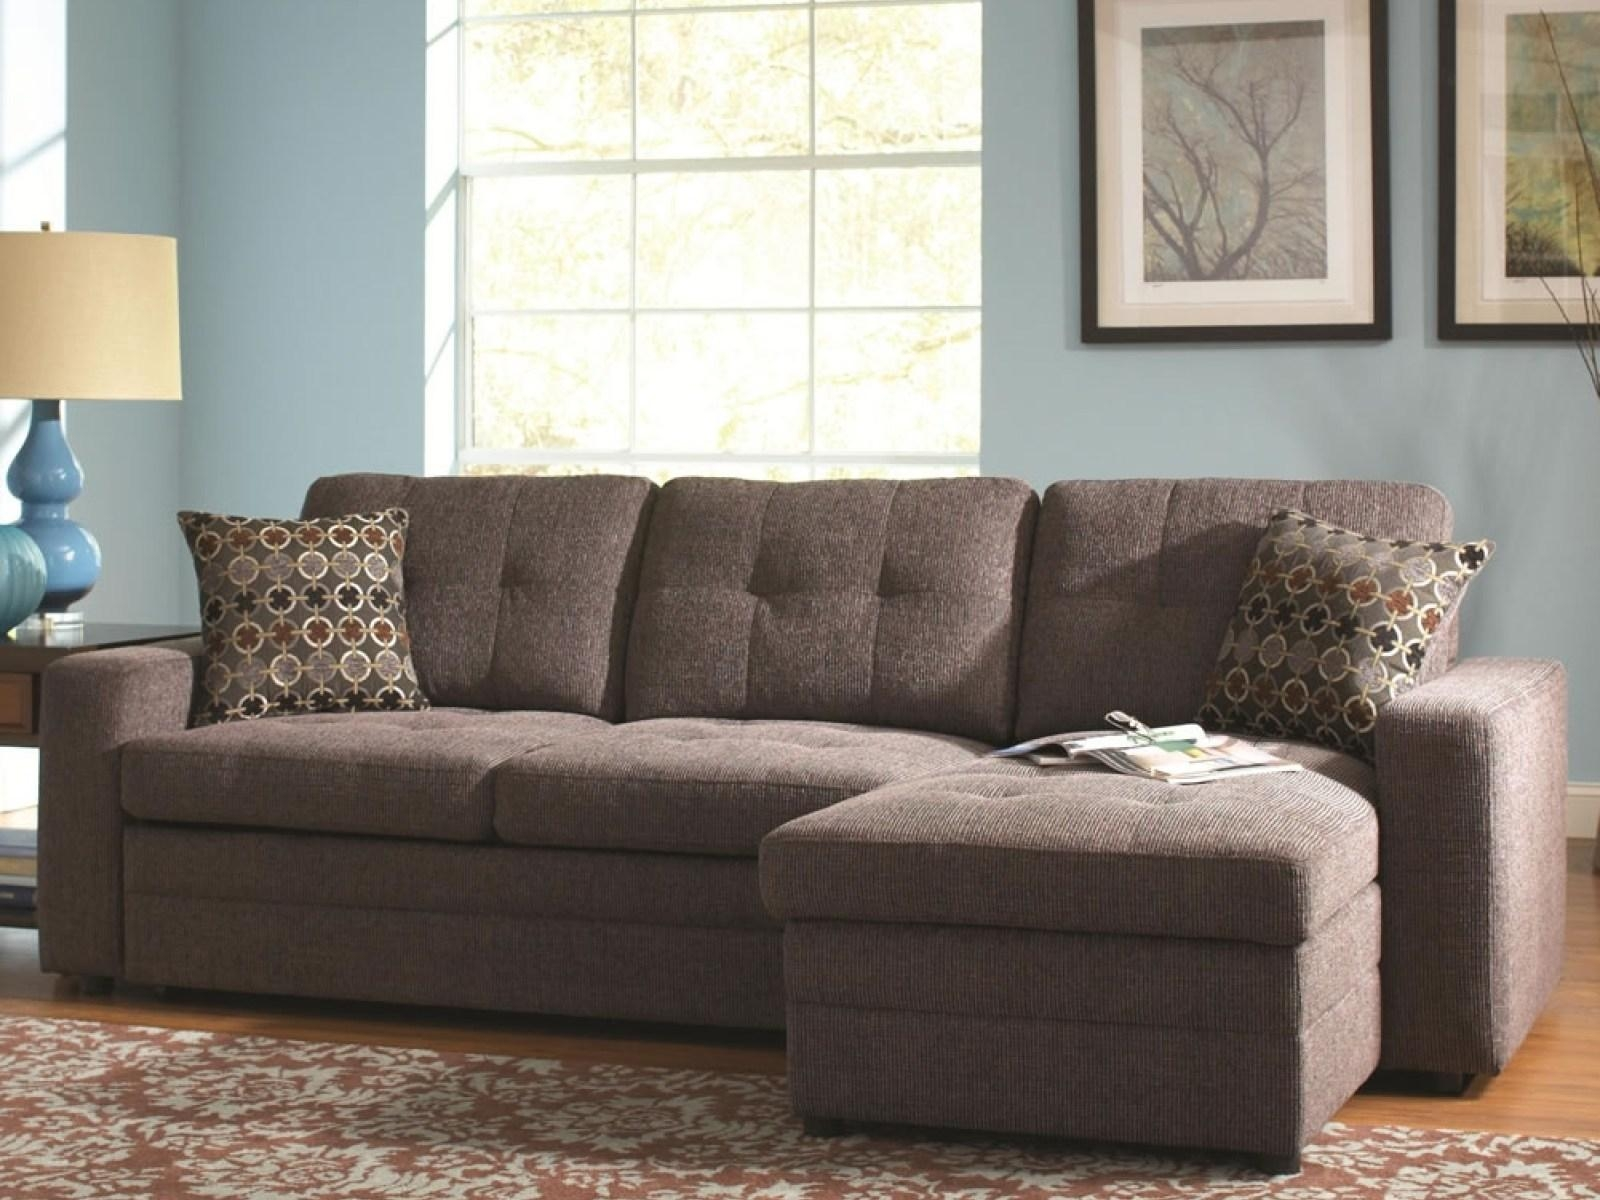 ☆▻ Sofa : 15 Good Looking Reclining Sectional Sofas For Small Pertaining To Sectional Small Spaces (View 13 of 20)